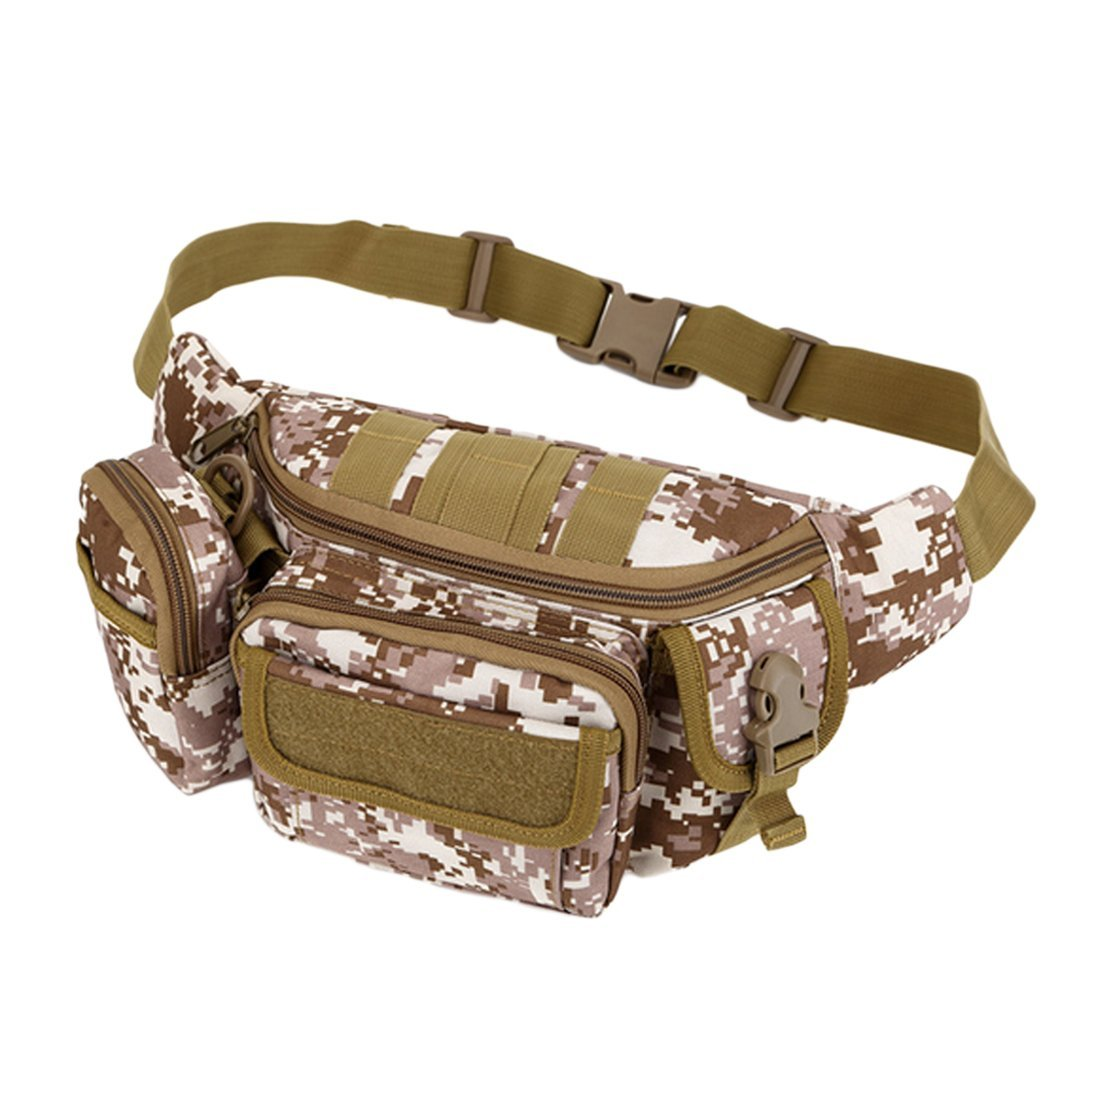 Nylon Sport Camping Pack Water Bottle Waist Bag Tactical Molle Waterproof Bags,Khaki